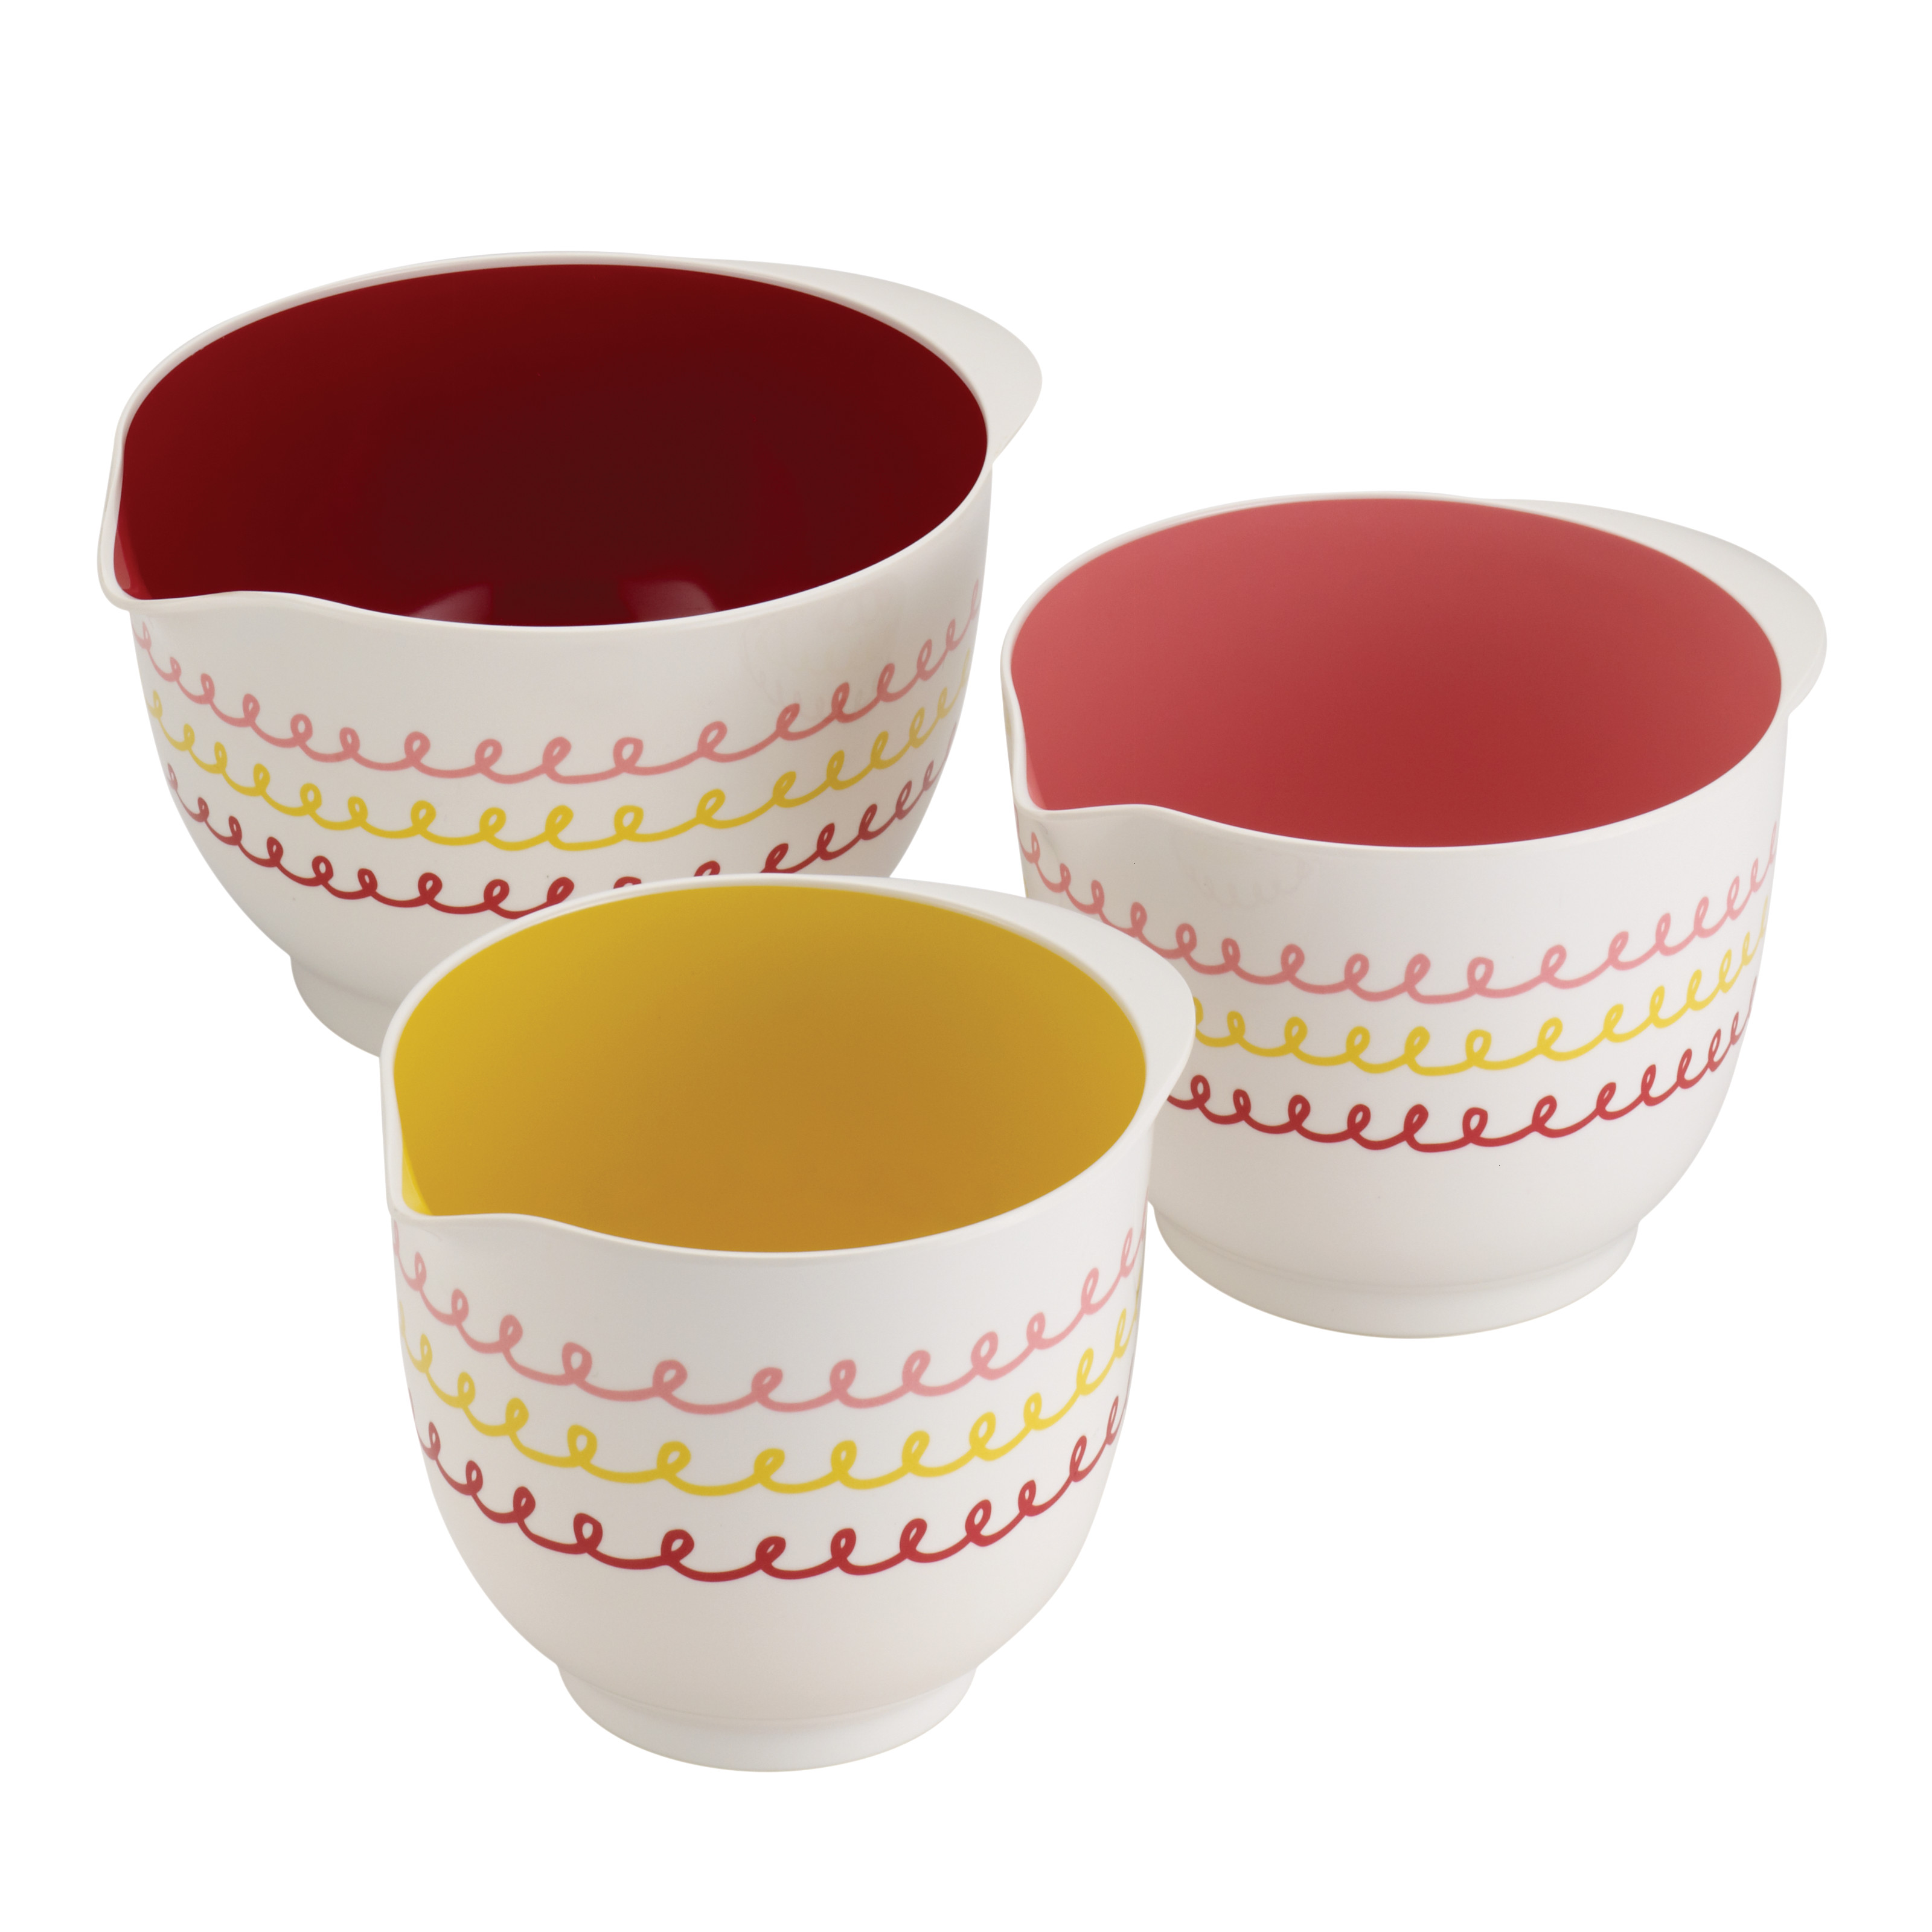 "Cake Boss Countertop Accessories 3-Piece Melamine Mixing Bowl Set, ""Icing"" Pattern, Print"